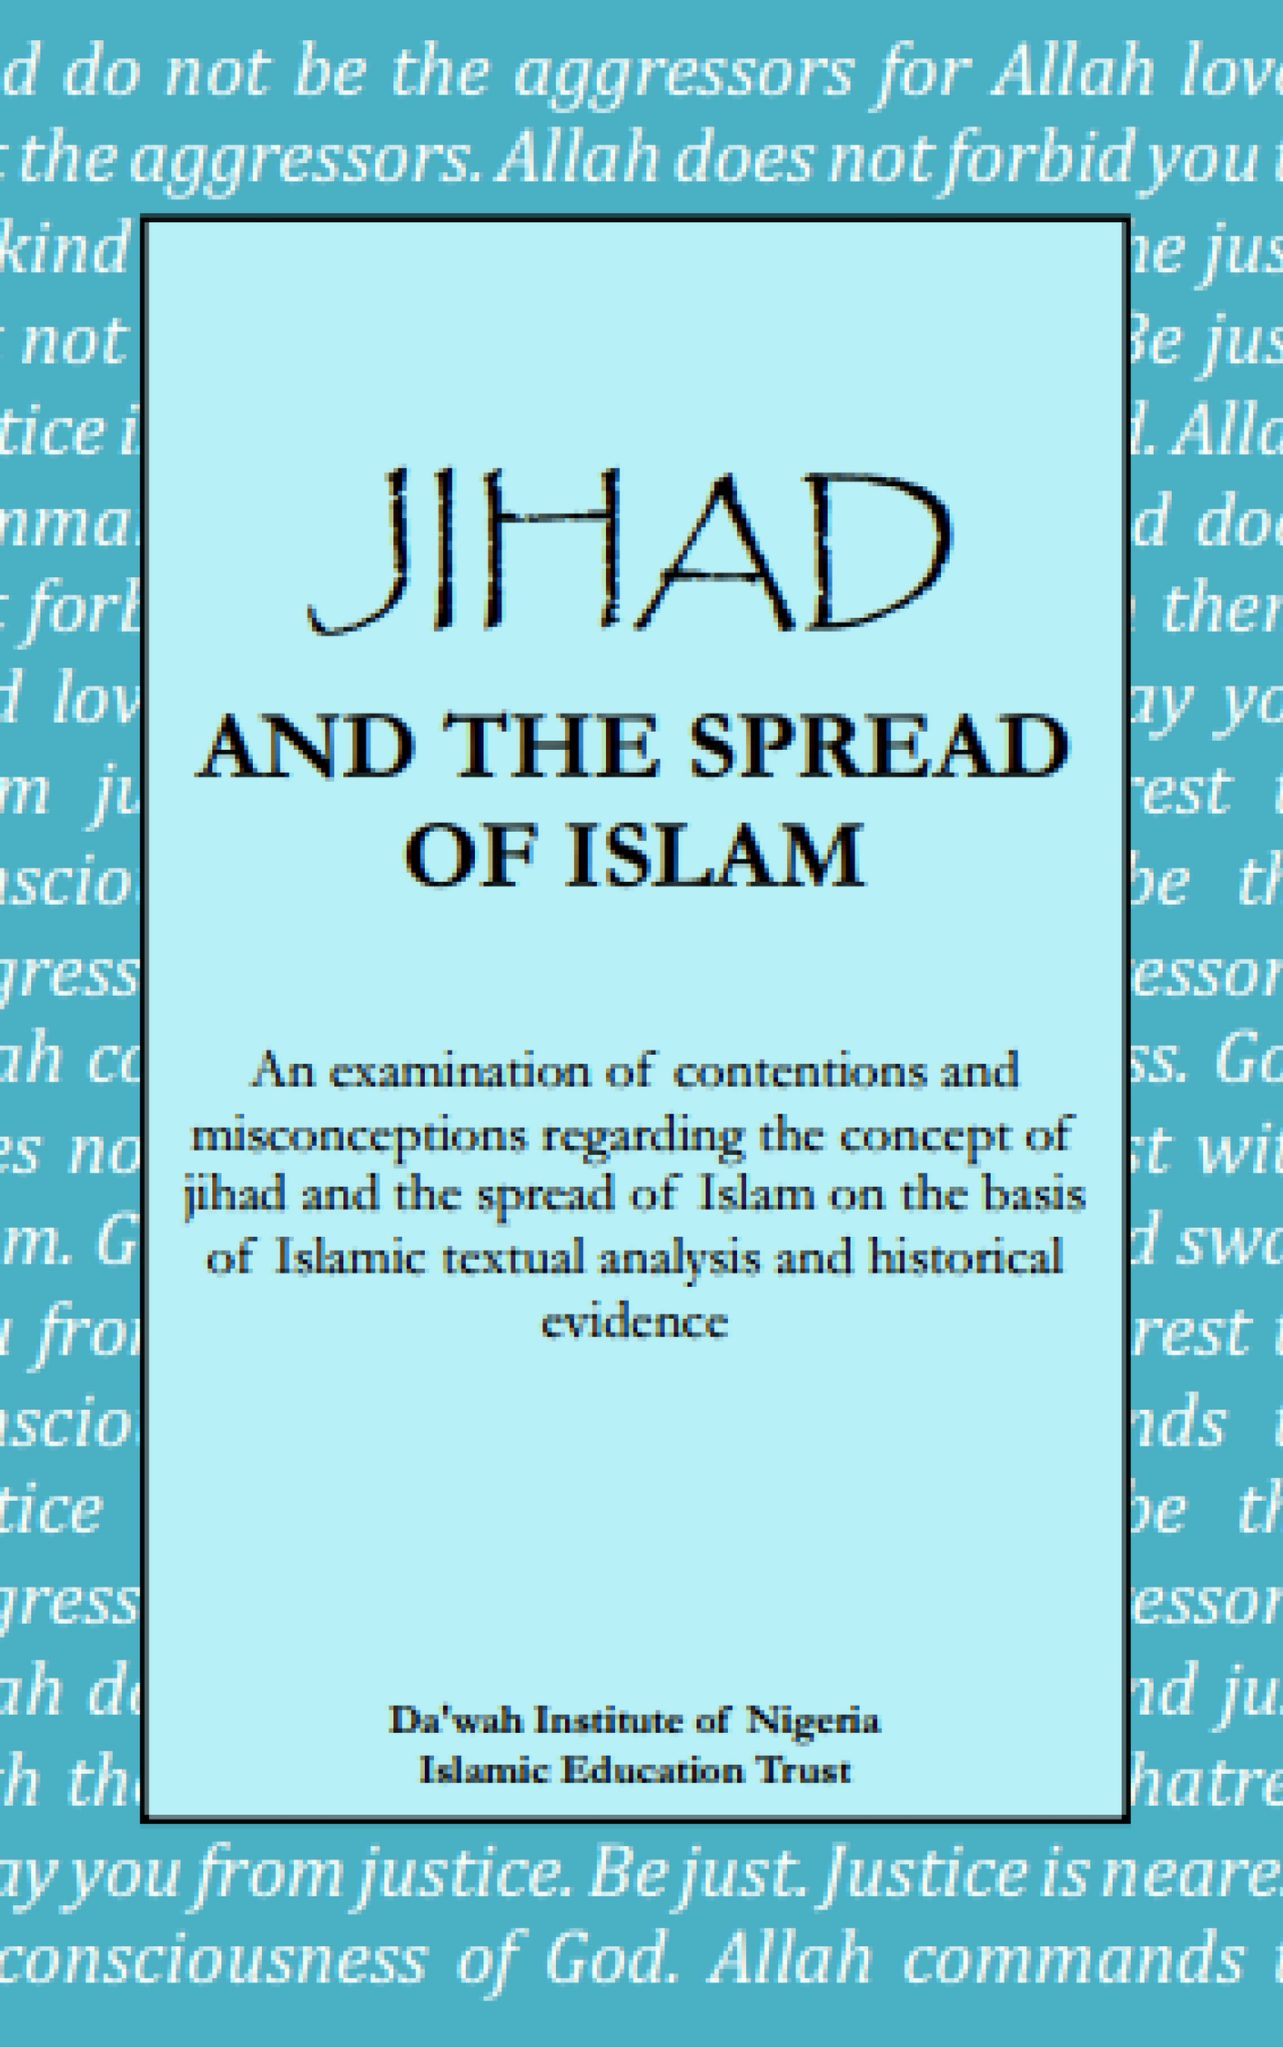 https://dawahinstitute.org/wp-content/uploads/Jihad-and-the-Spread-of-Islam.jpg